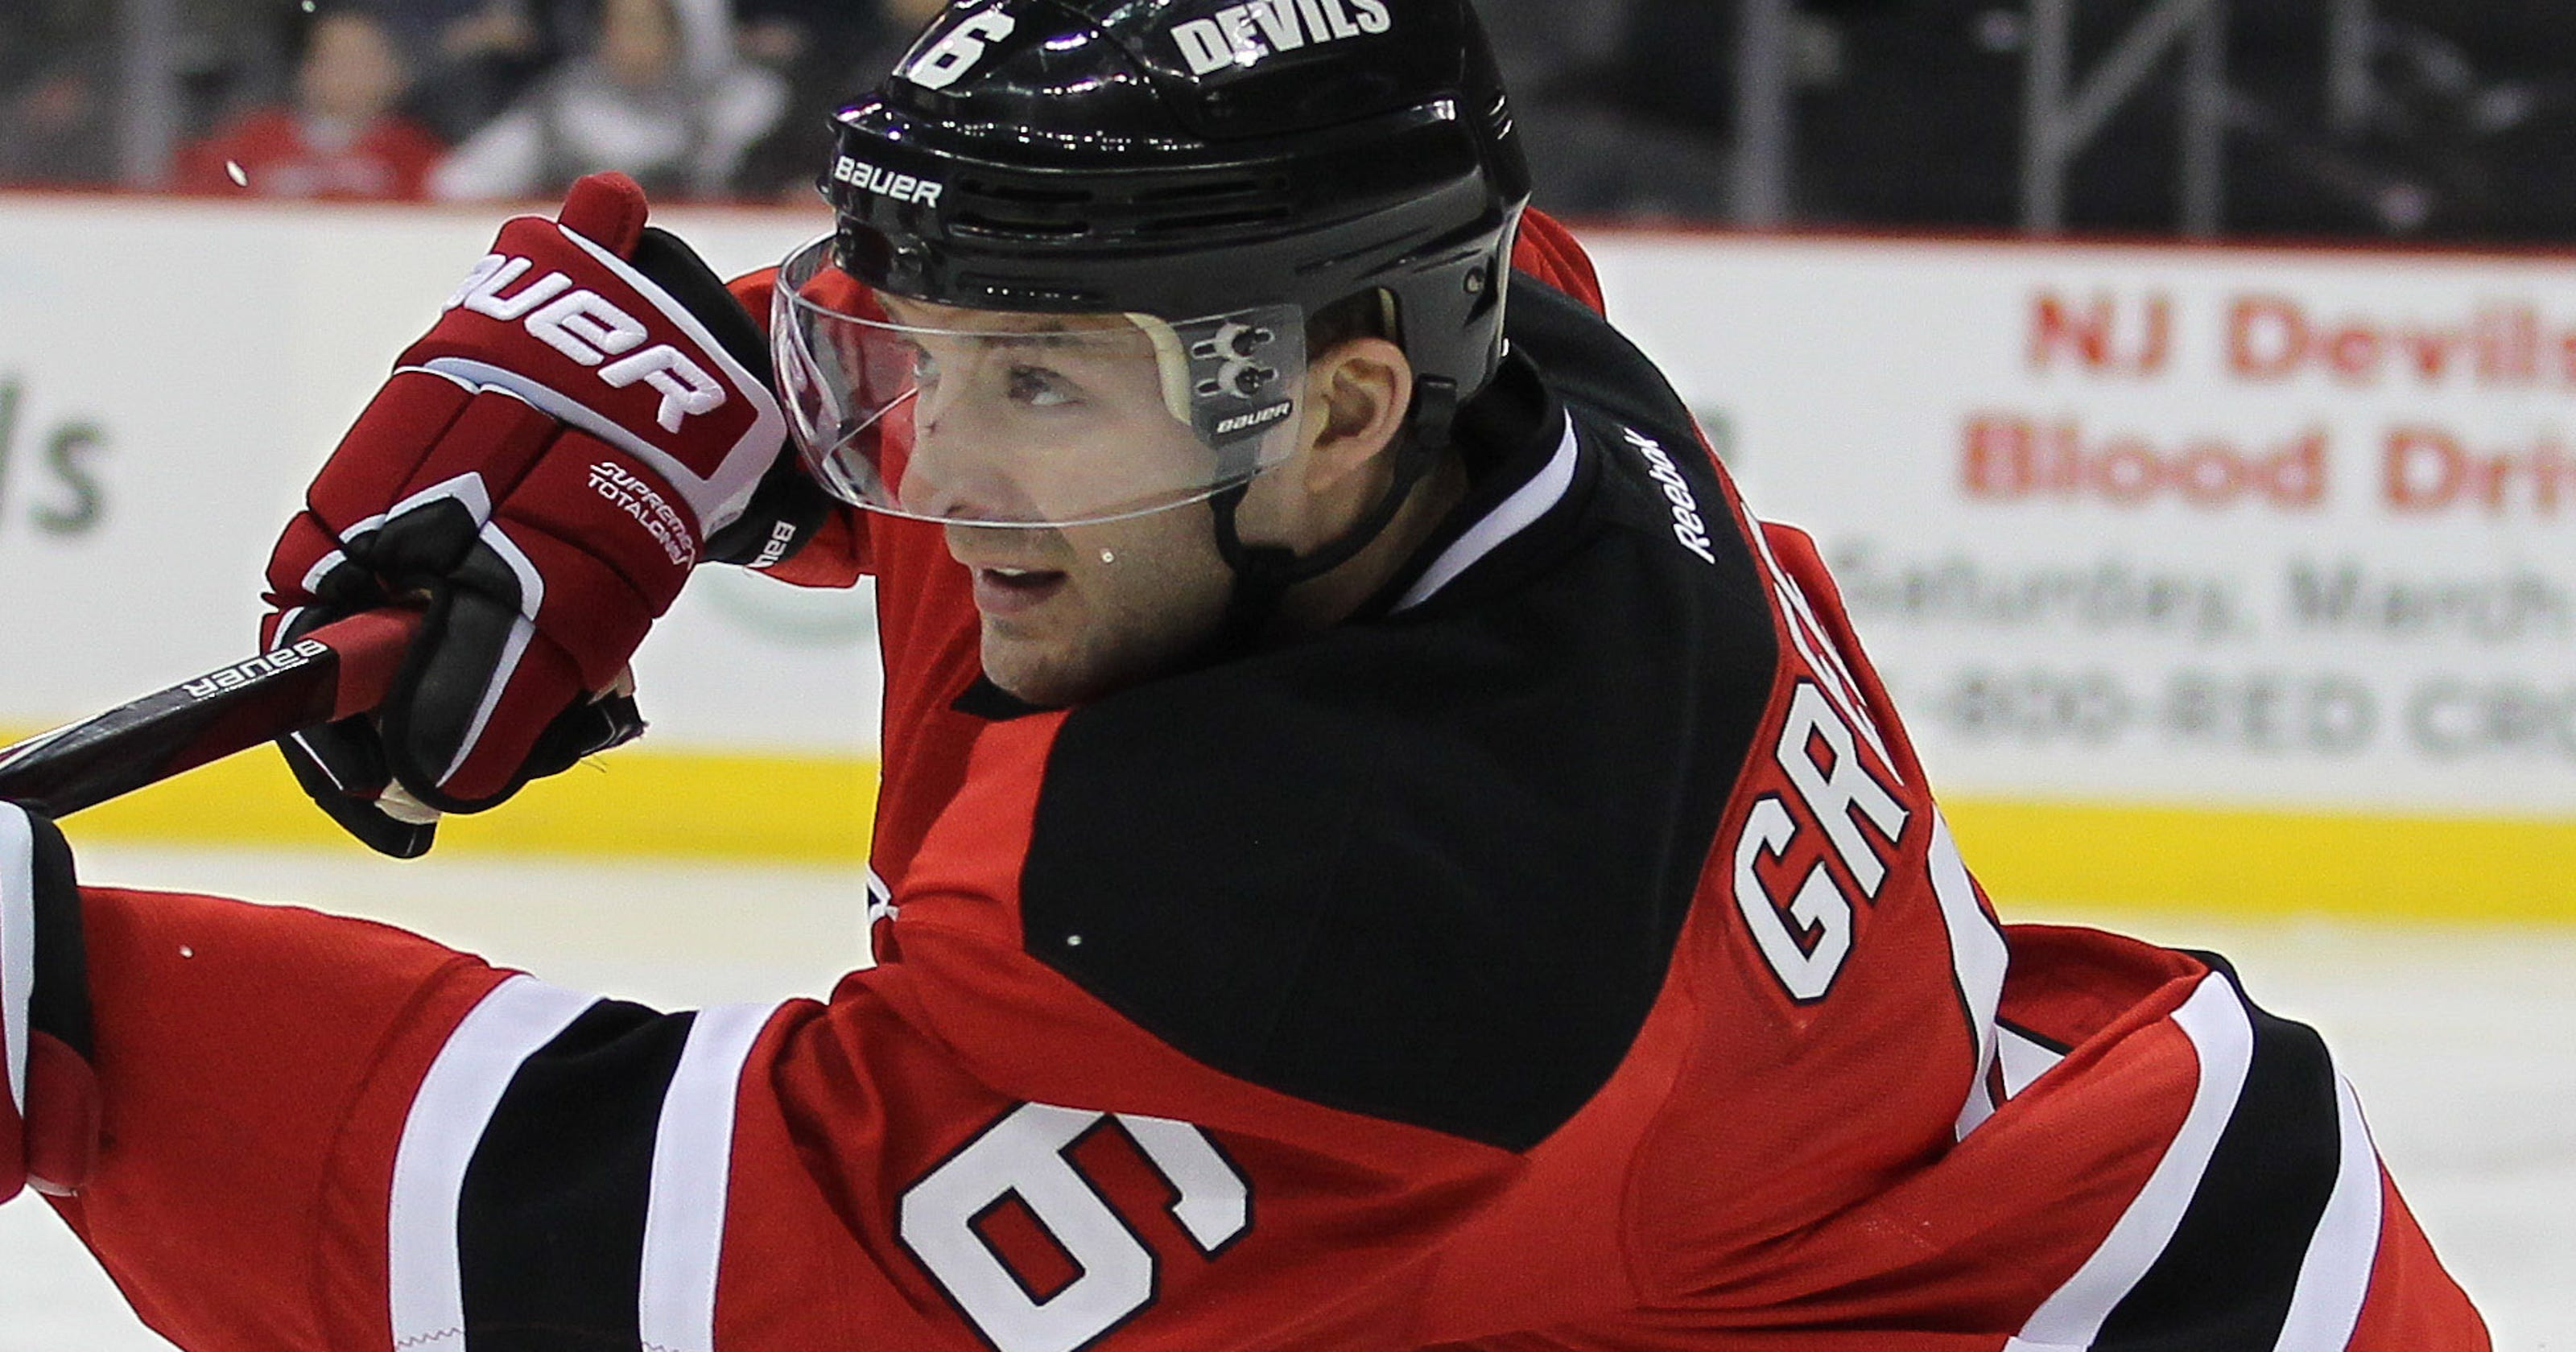 brand new 588c1 3cb91 Devils sign defenseman Andy Greene to extension